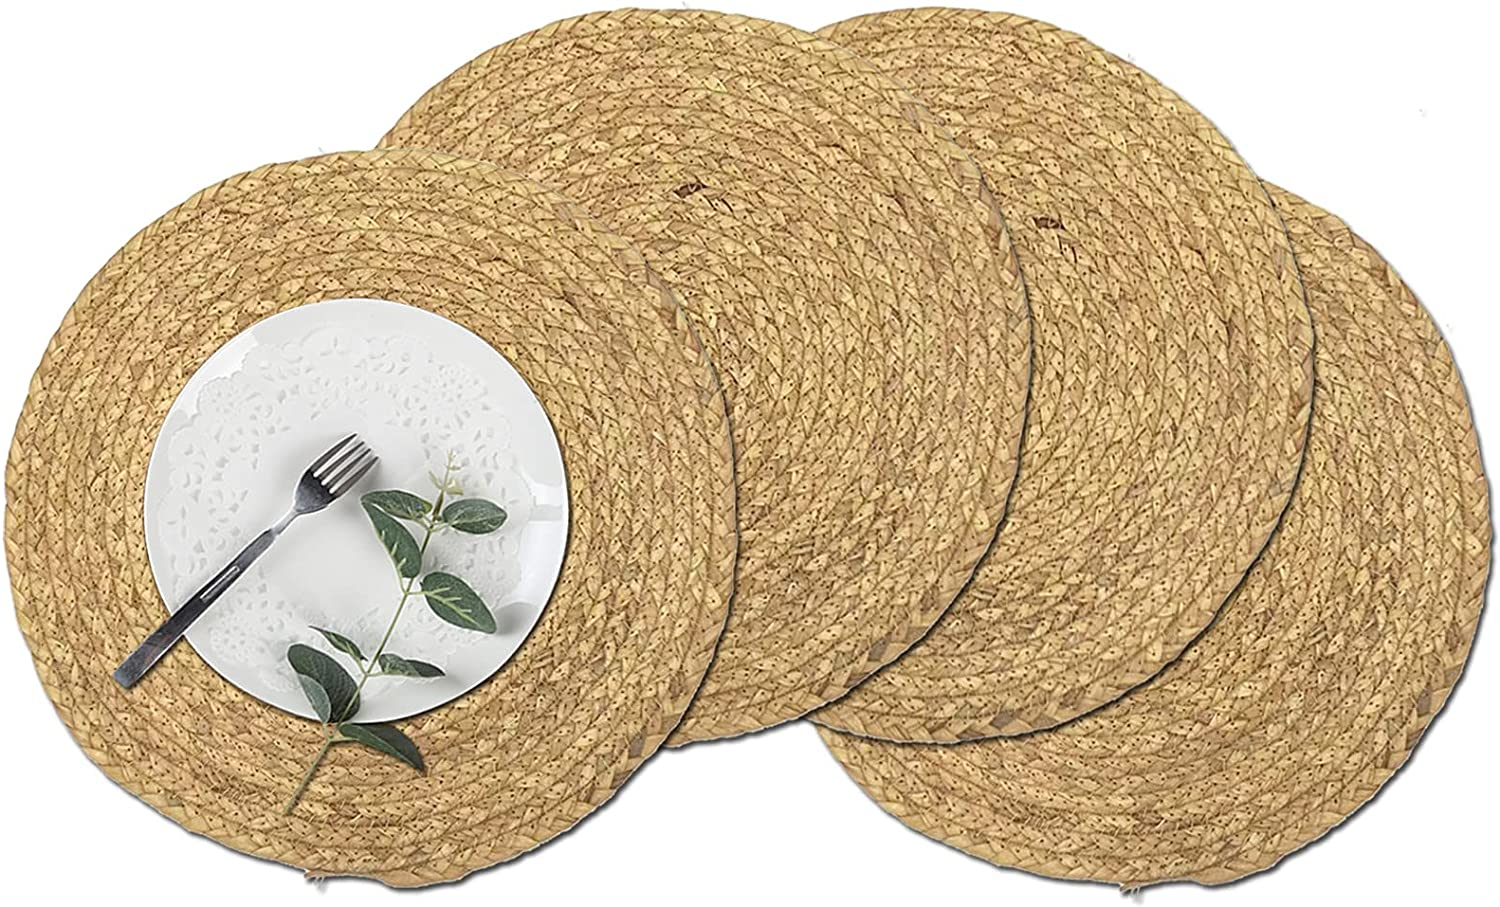 Woven Placemats Set of Free Shipping New New Orleans Mall 4 Round Rattan inch Natural 14